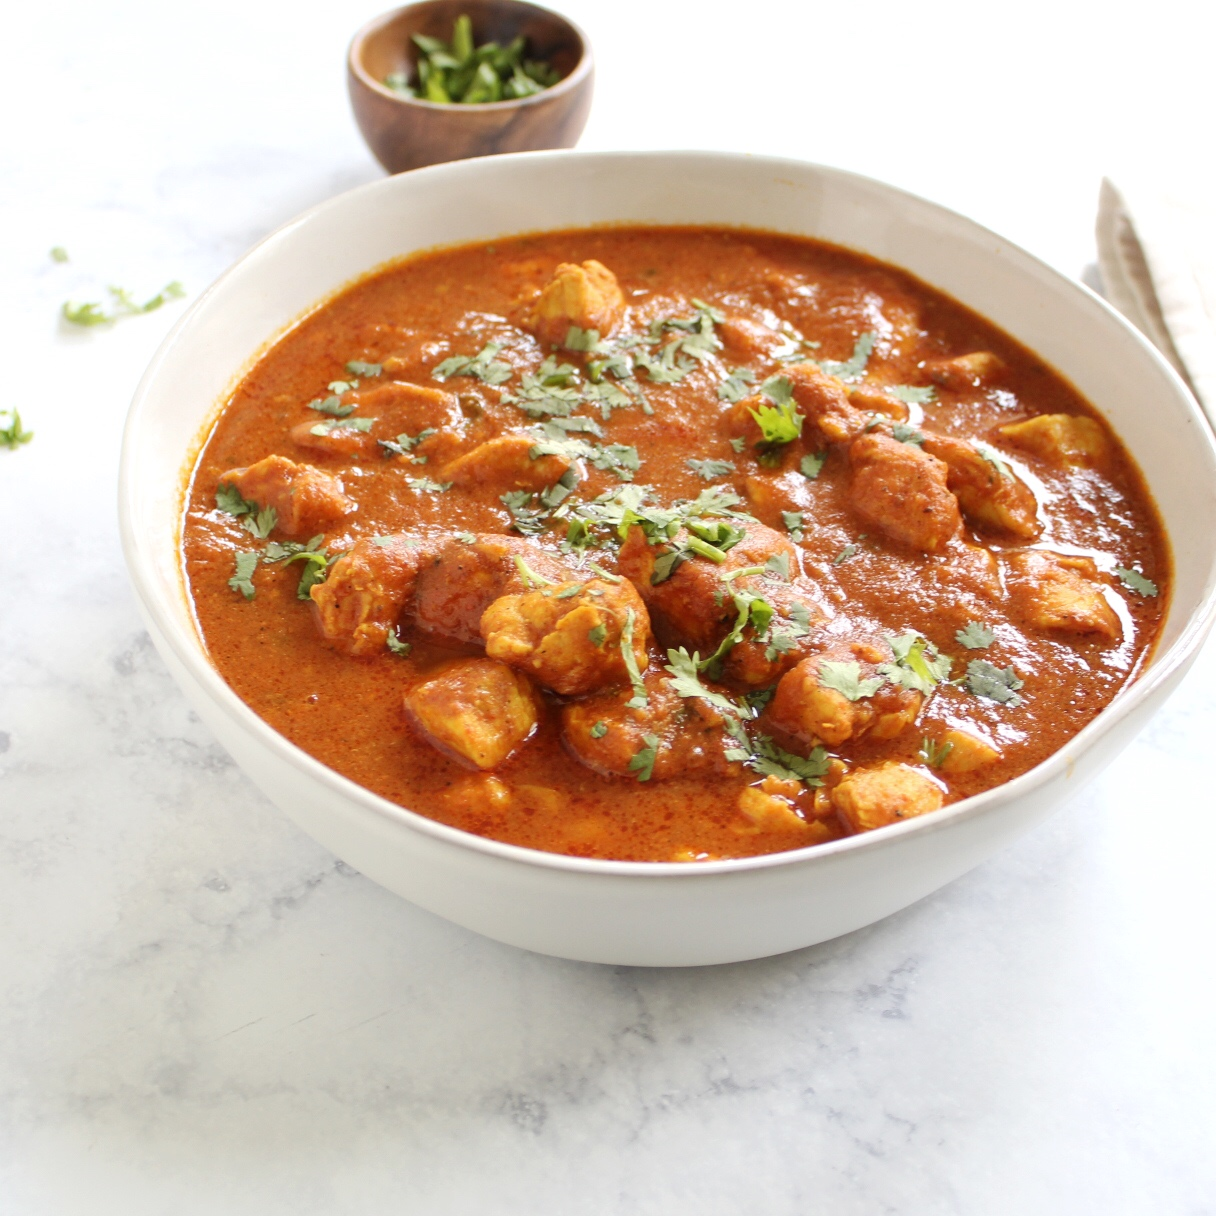 Chicken curry in serving bowl